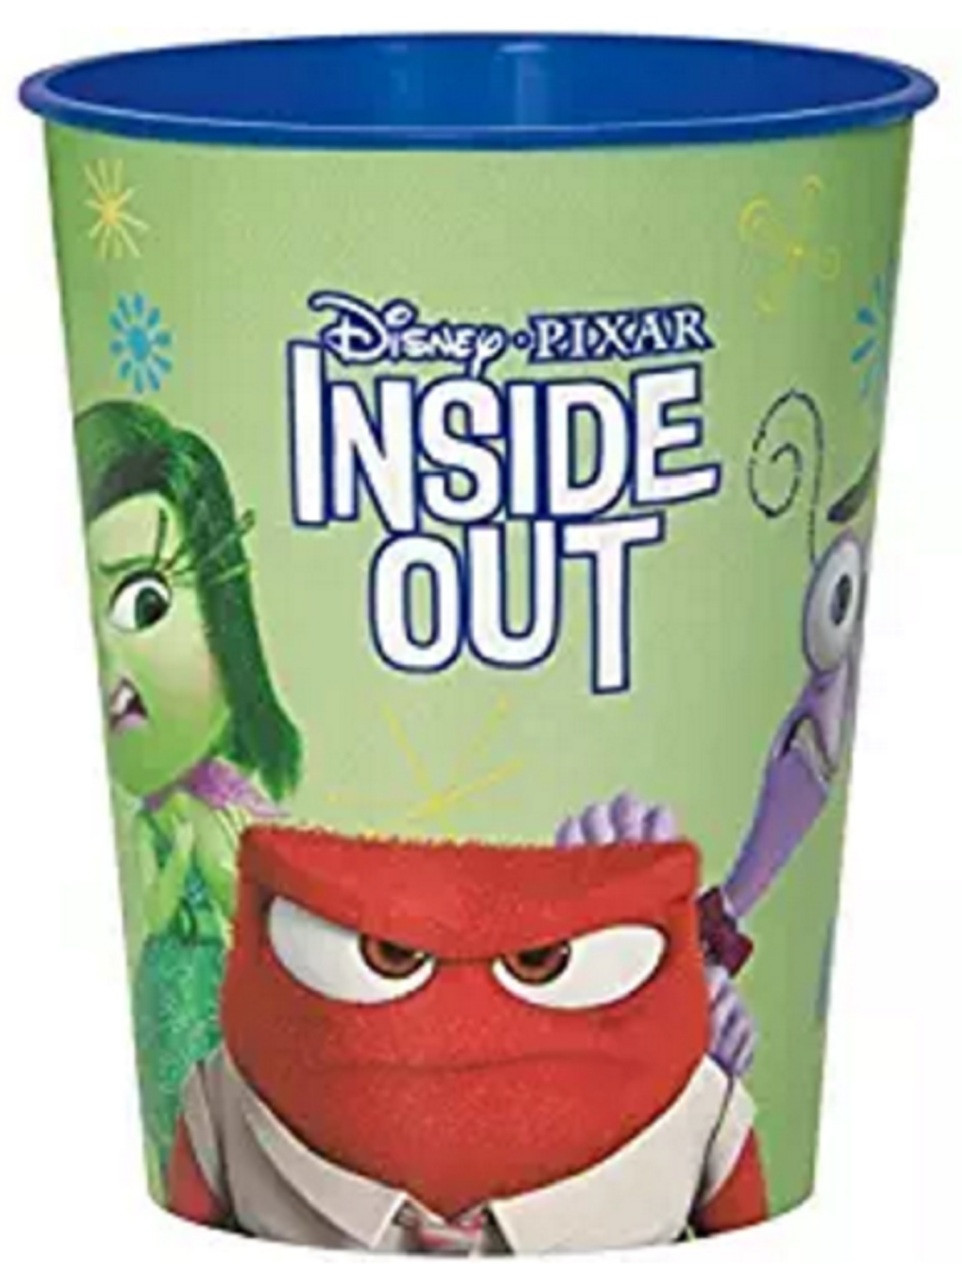 Inside Out Green Plastic 16 Ounce Reusable Keepsake Favor Cup (1 Cup)